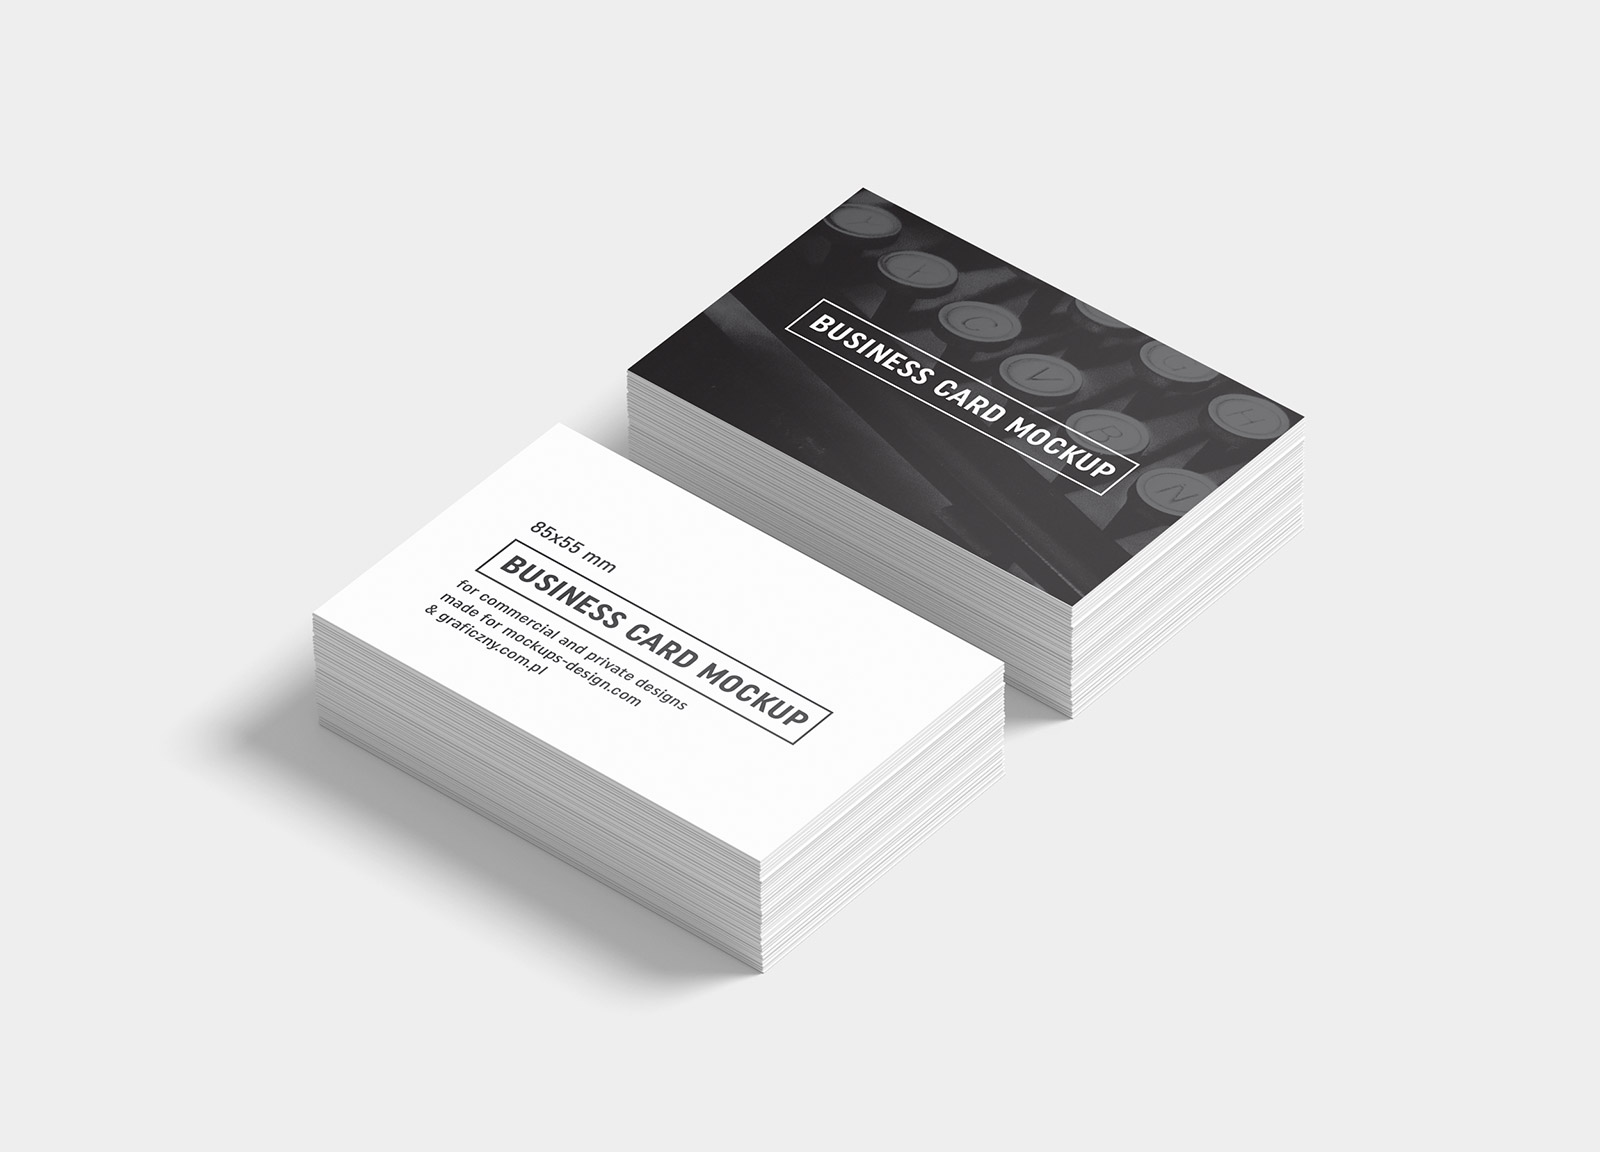 Free black white business card mockup psd templates good mockups free black white business card mockup psd wajeb Choice Image